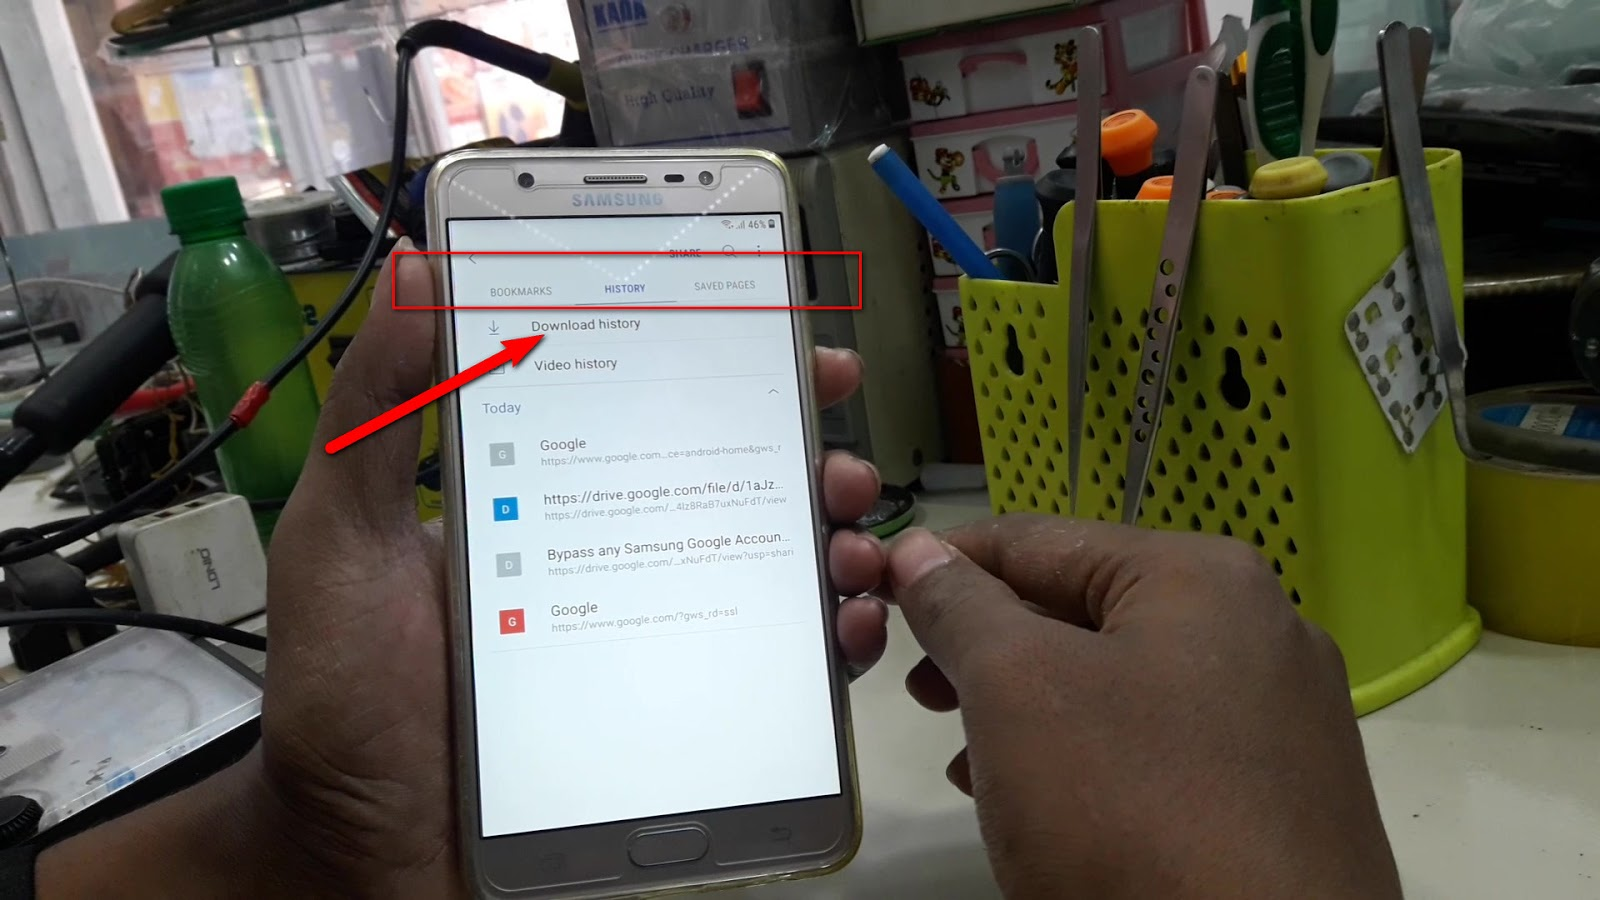 Samsung Android Nougat Google Account Bypass (FRP Lock